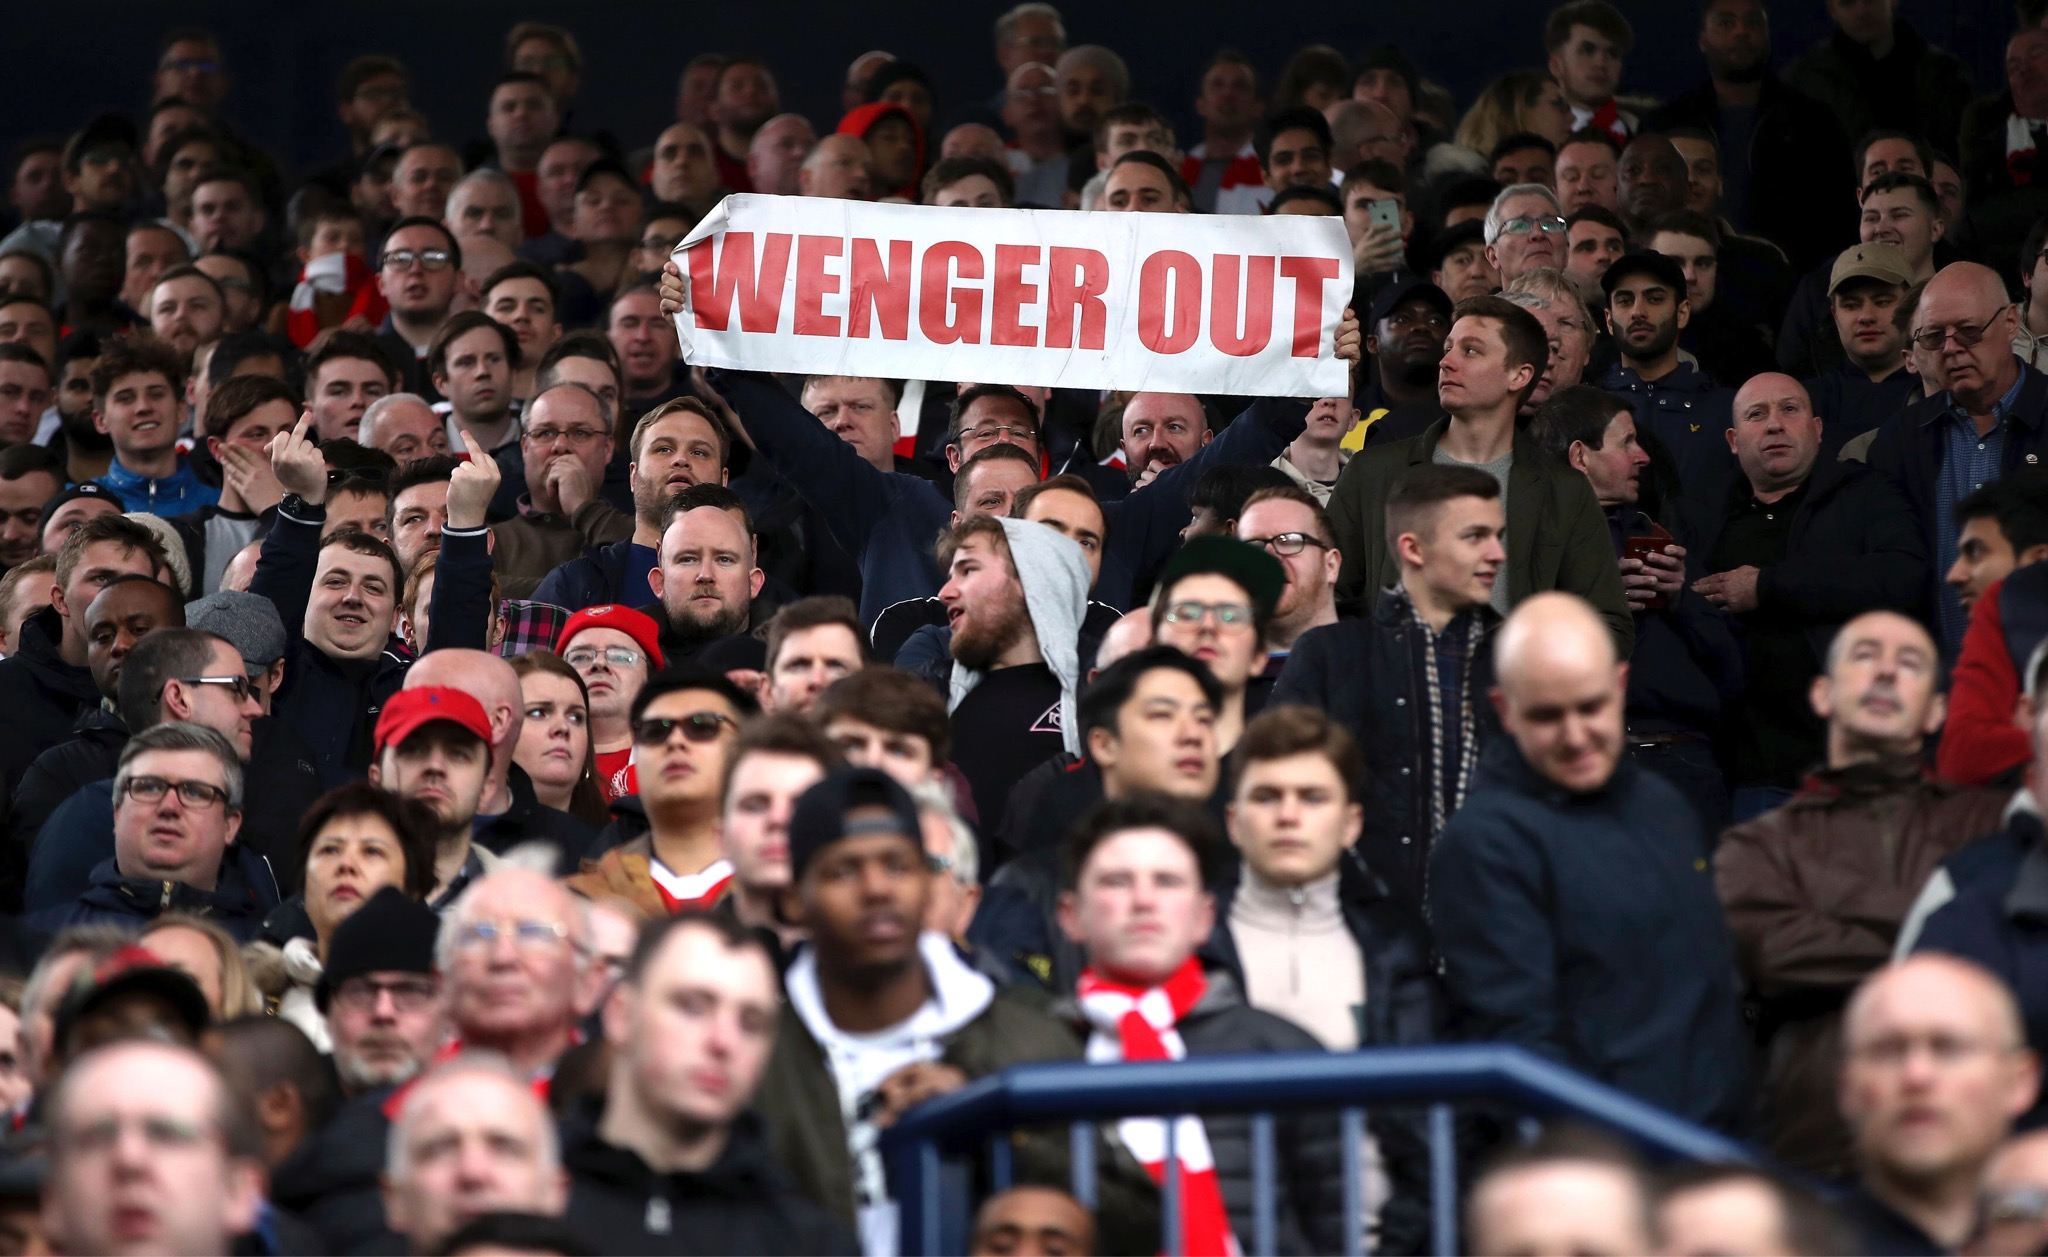 An Arsenal fan holds up a banner during the English Premier League match between West Bromwich Albion and Arsenal, at The Hawthorns, in West Bromwich, England, Saturday March 18. (Nick Potts/PA via AP)